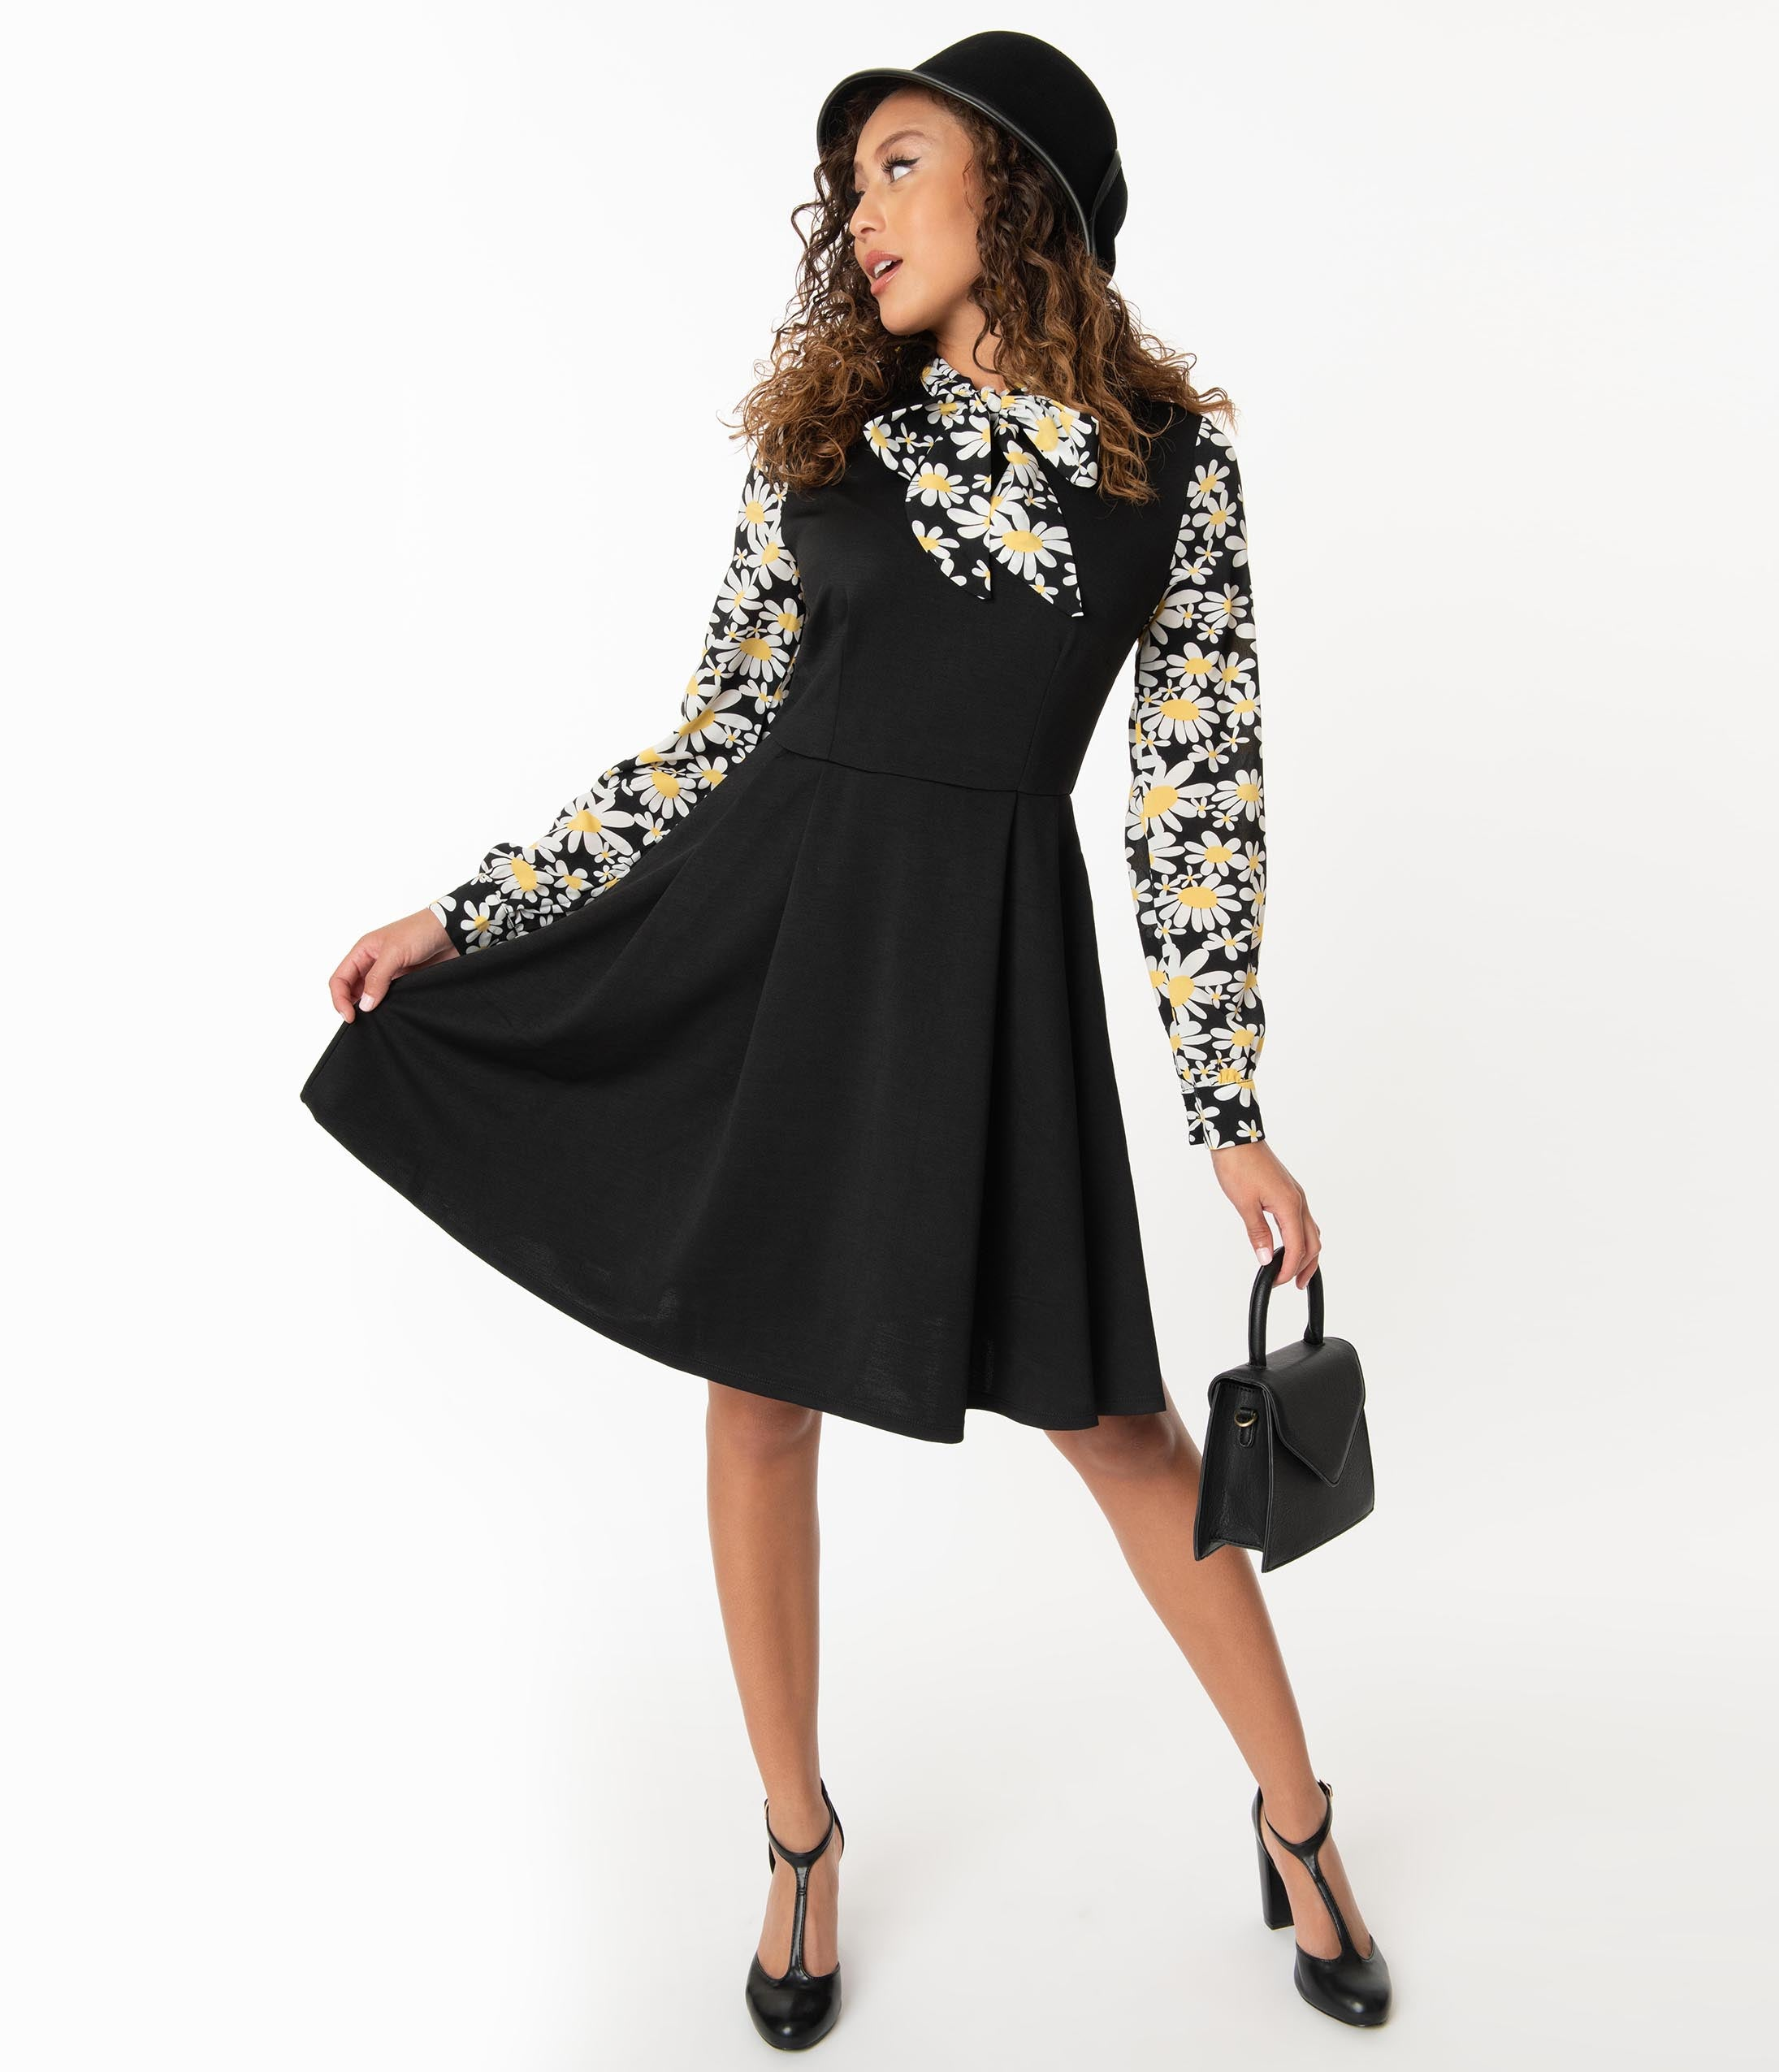 Vintage Style Dresses | Vintage Inspired Dresses Smak Parlour Black  Daisy Floral She.e.o. Fit  Flare Dress $78.00 AT vintagedancer.com